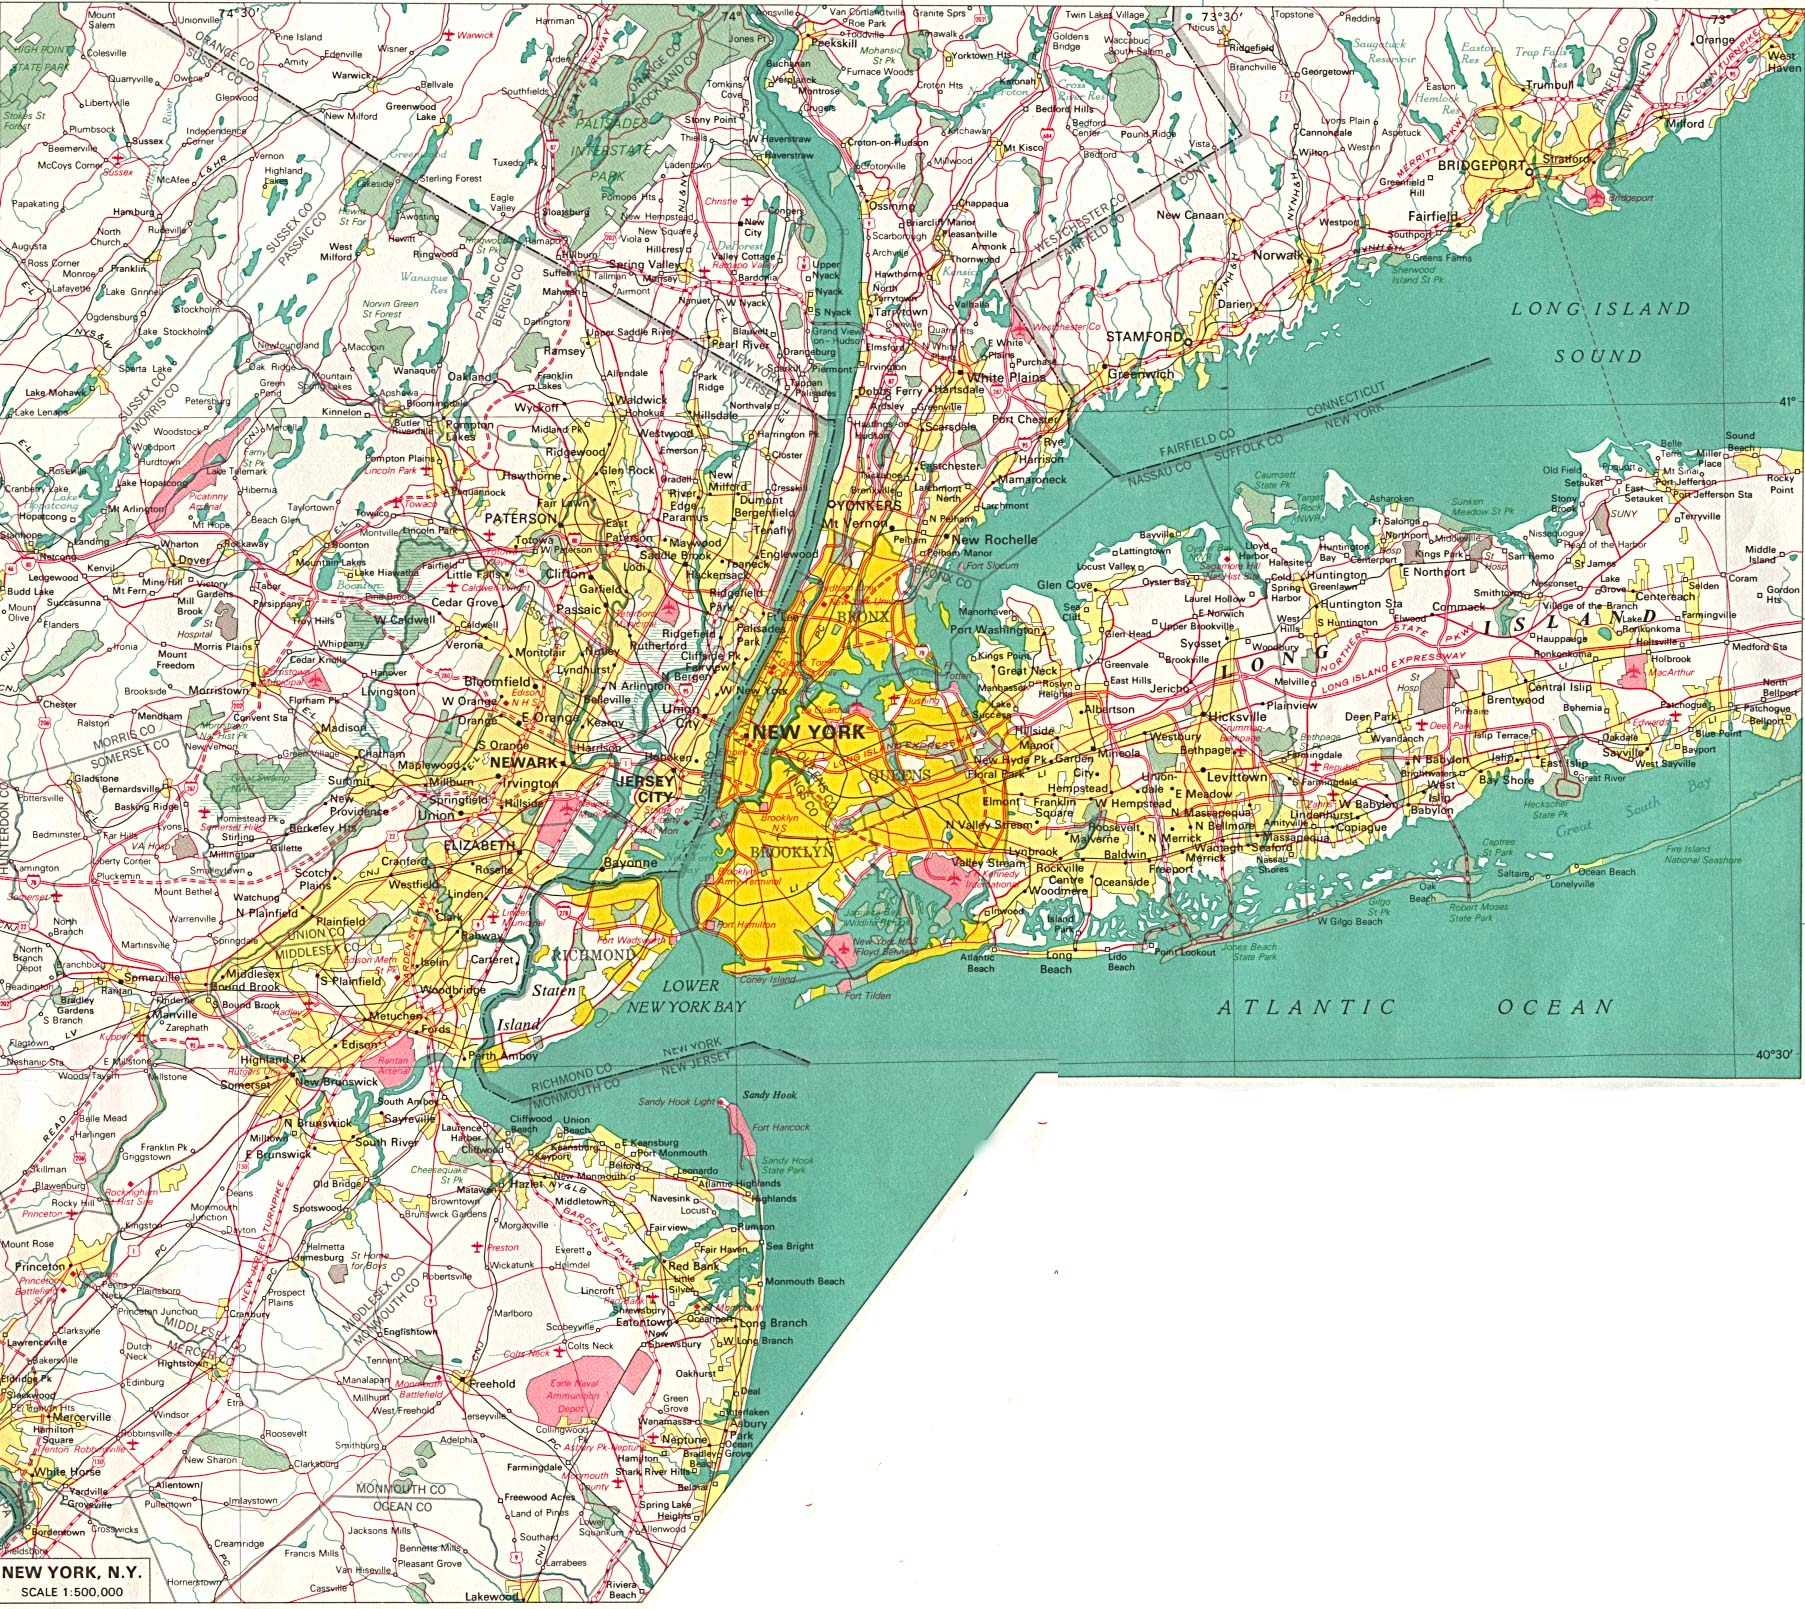 New York City Map, United States